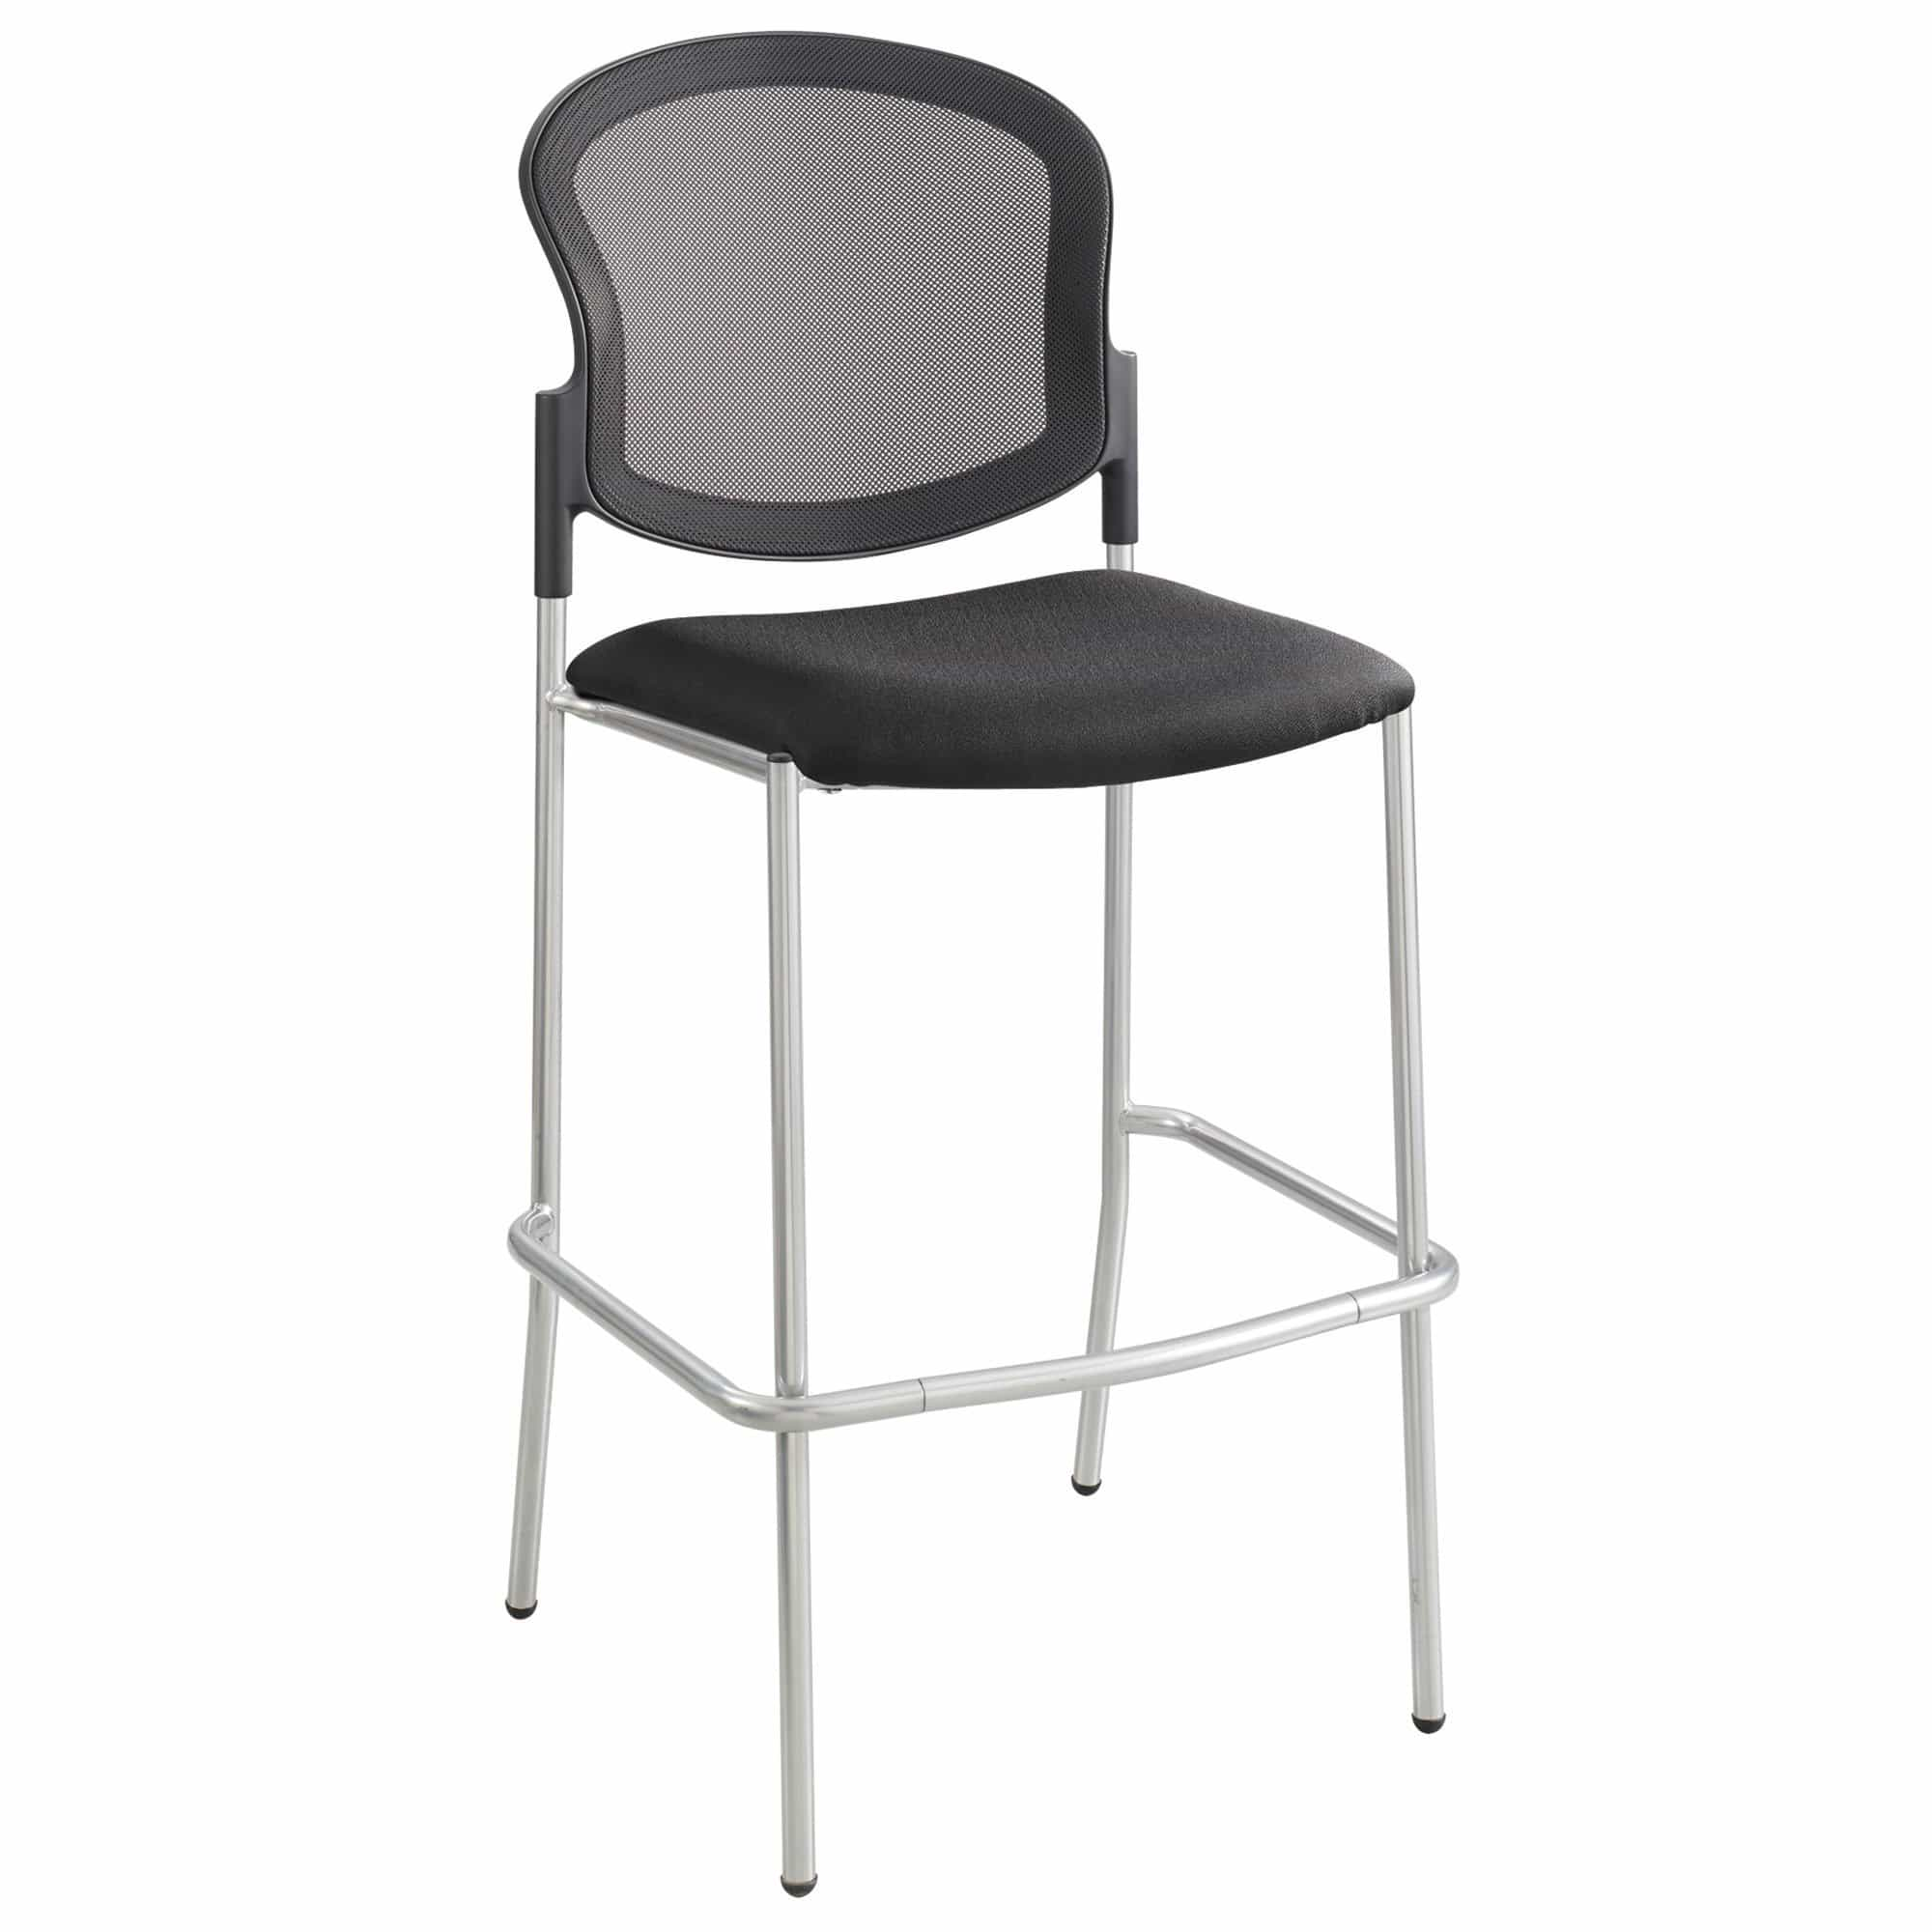 bedinhome - Safco Black Diaz Bistro-Height Mesh Back silver frame Chair - Safco - Extended/Counter Hght Seating